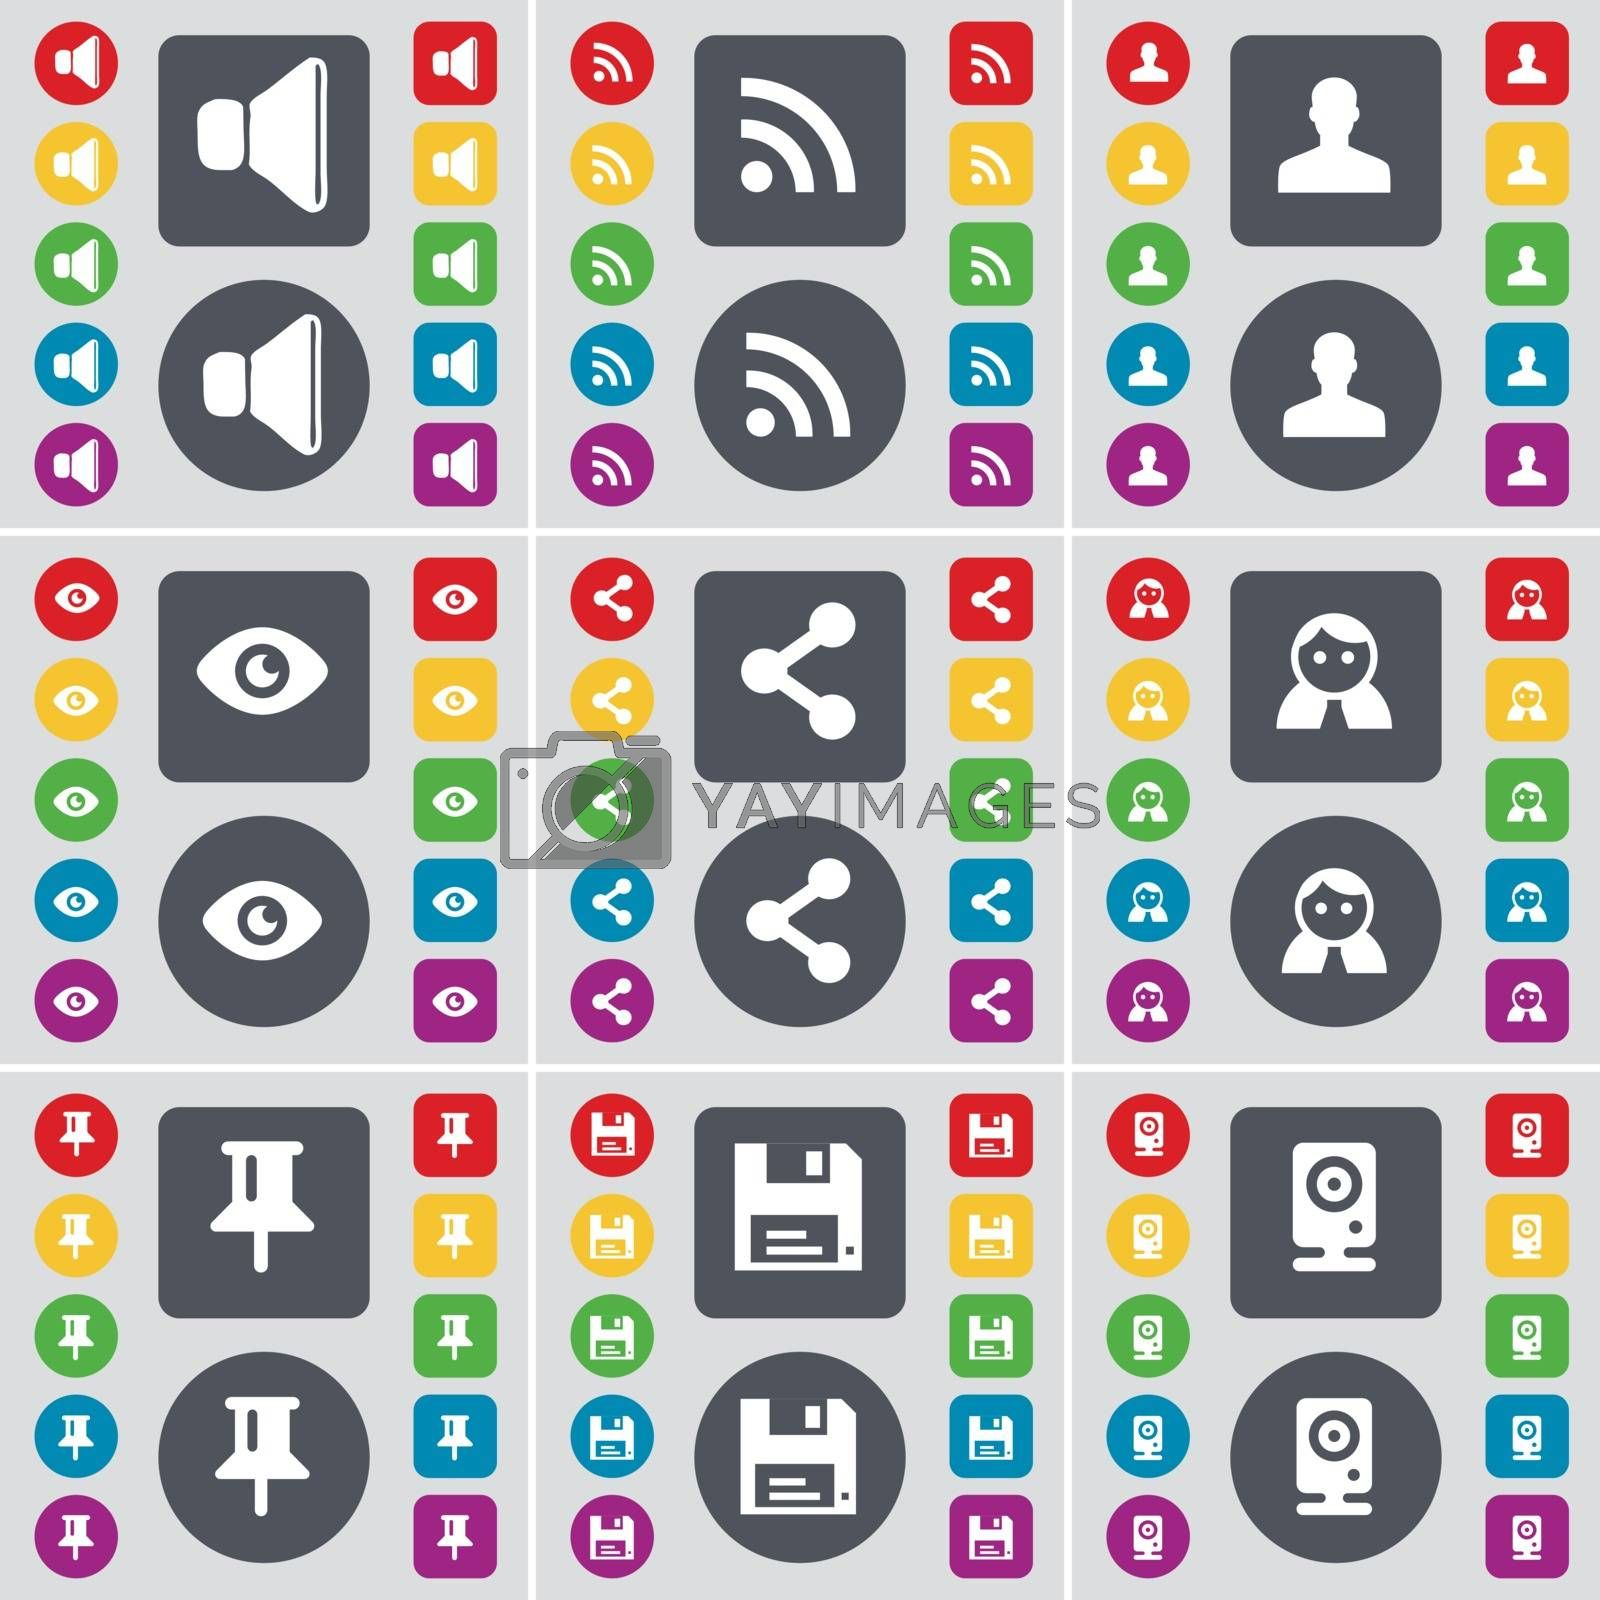 Royalty free image of Sound, RSS, Avatar, Vision, Share, Silhouette, Pin, Floppy, Speaker icon symbol. A large set of flat, colored buttons for your design. Vector by serhii_lohvyniuk